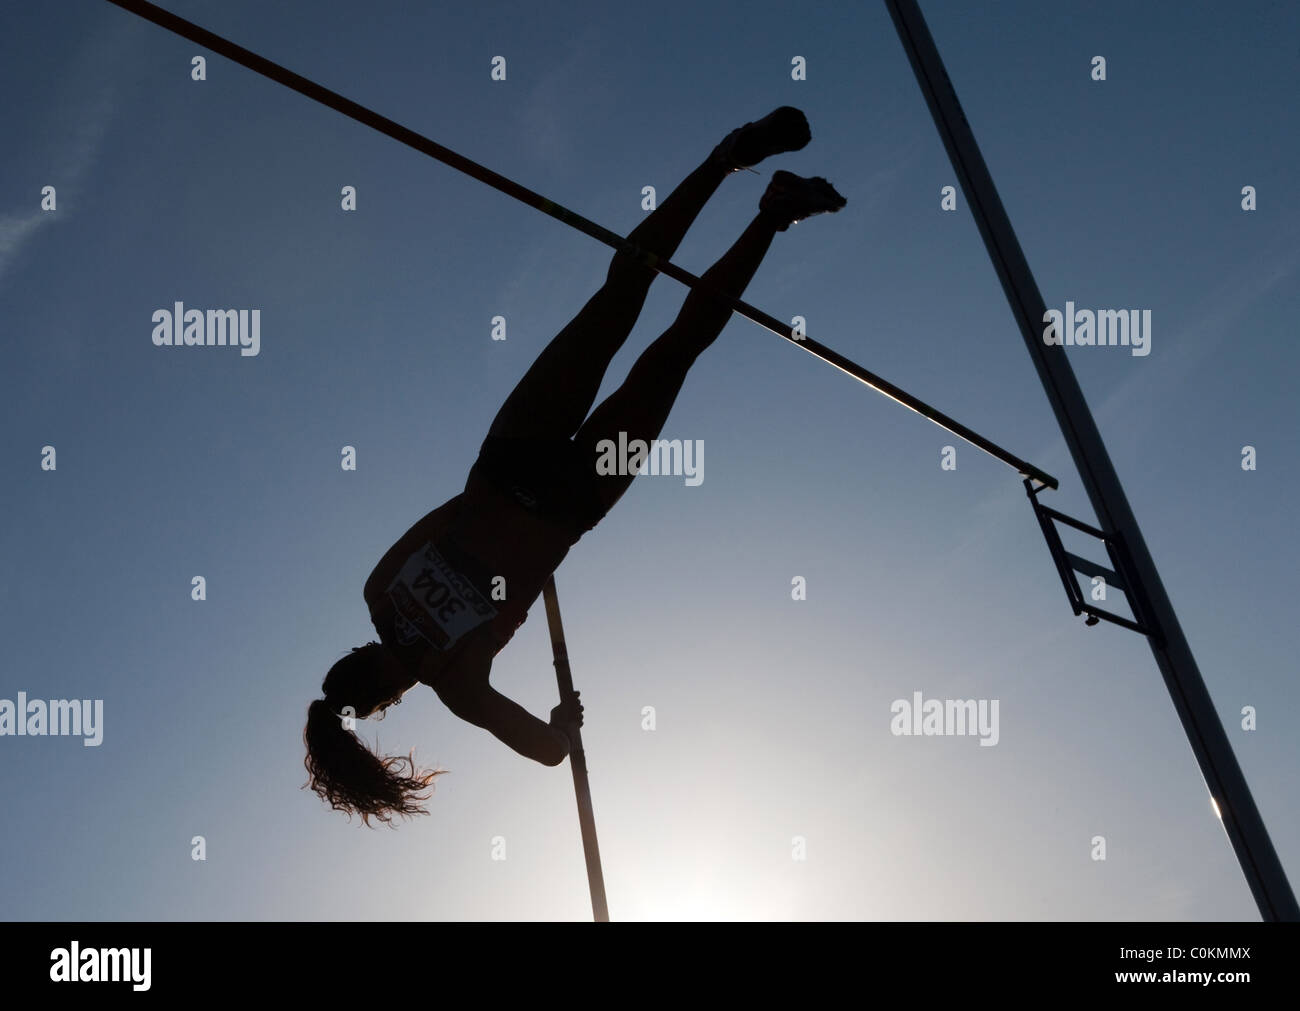 pole vault athlete woman jumping Sport outdoor Athletics competition Championships of Spain, July 3rd 4th 2010 Calvià - Stock Image